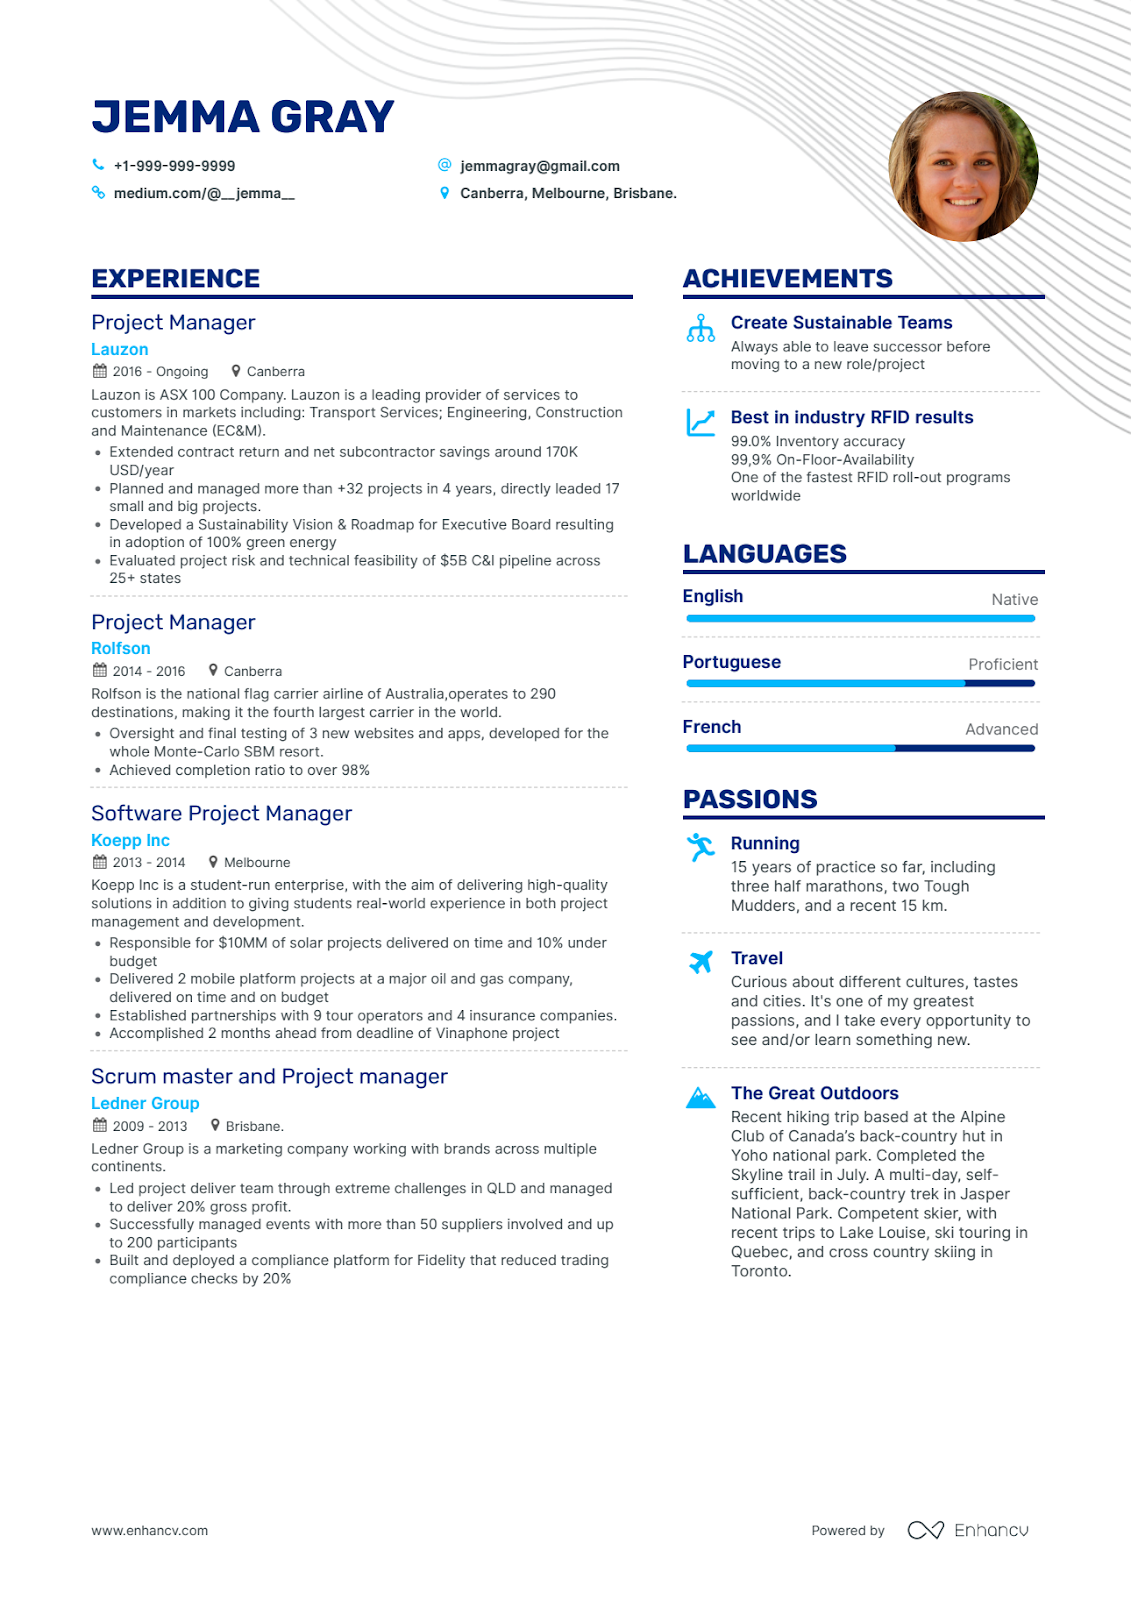 Enhancv Does Having Color on My Resume Affect My Chance of Getting Hired? Color on resume